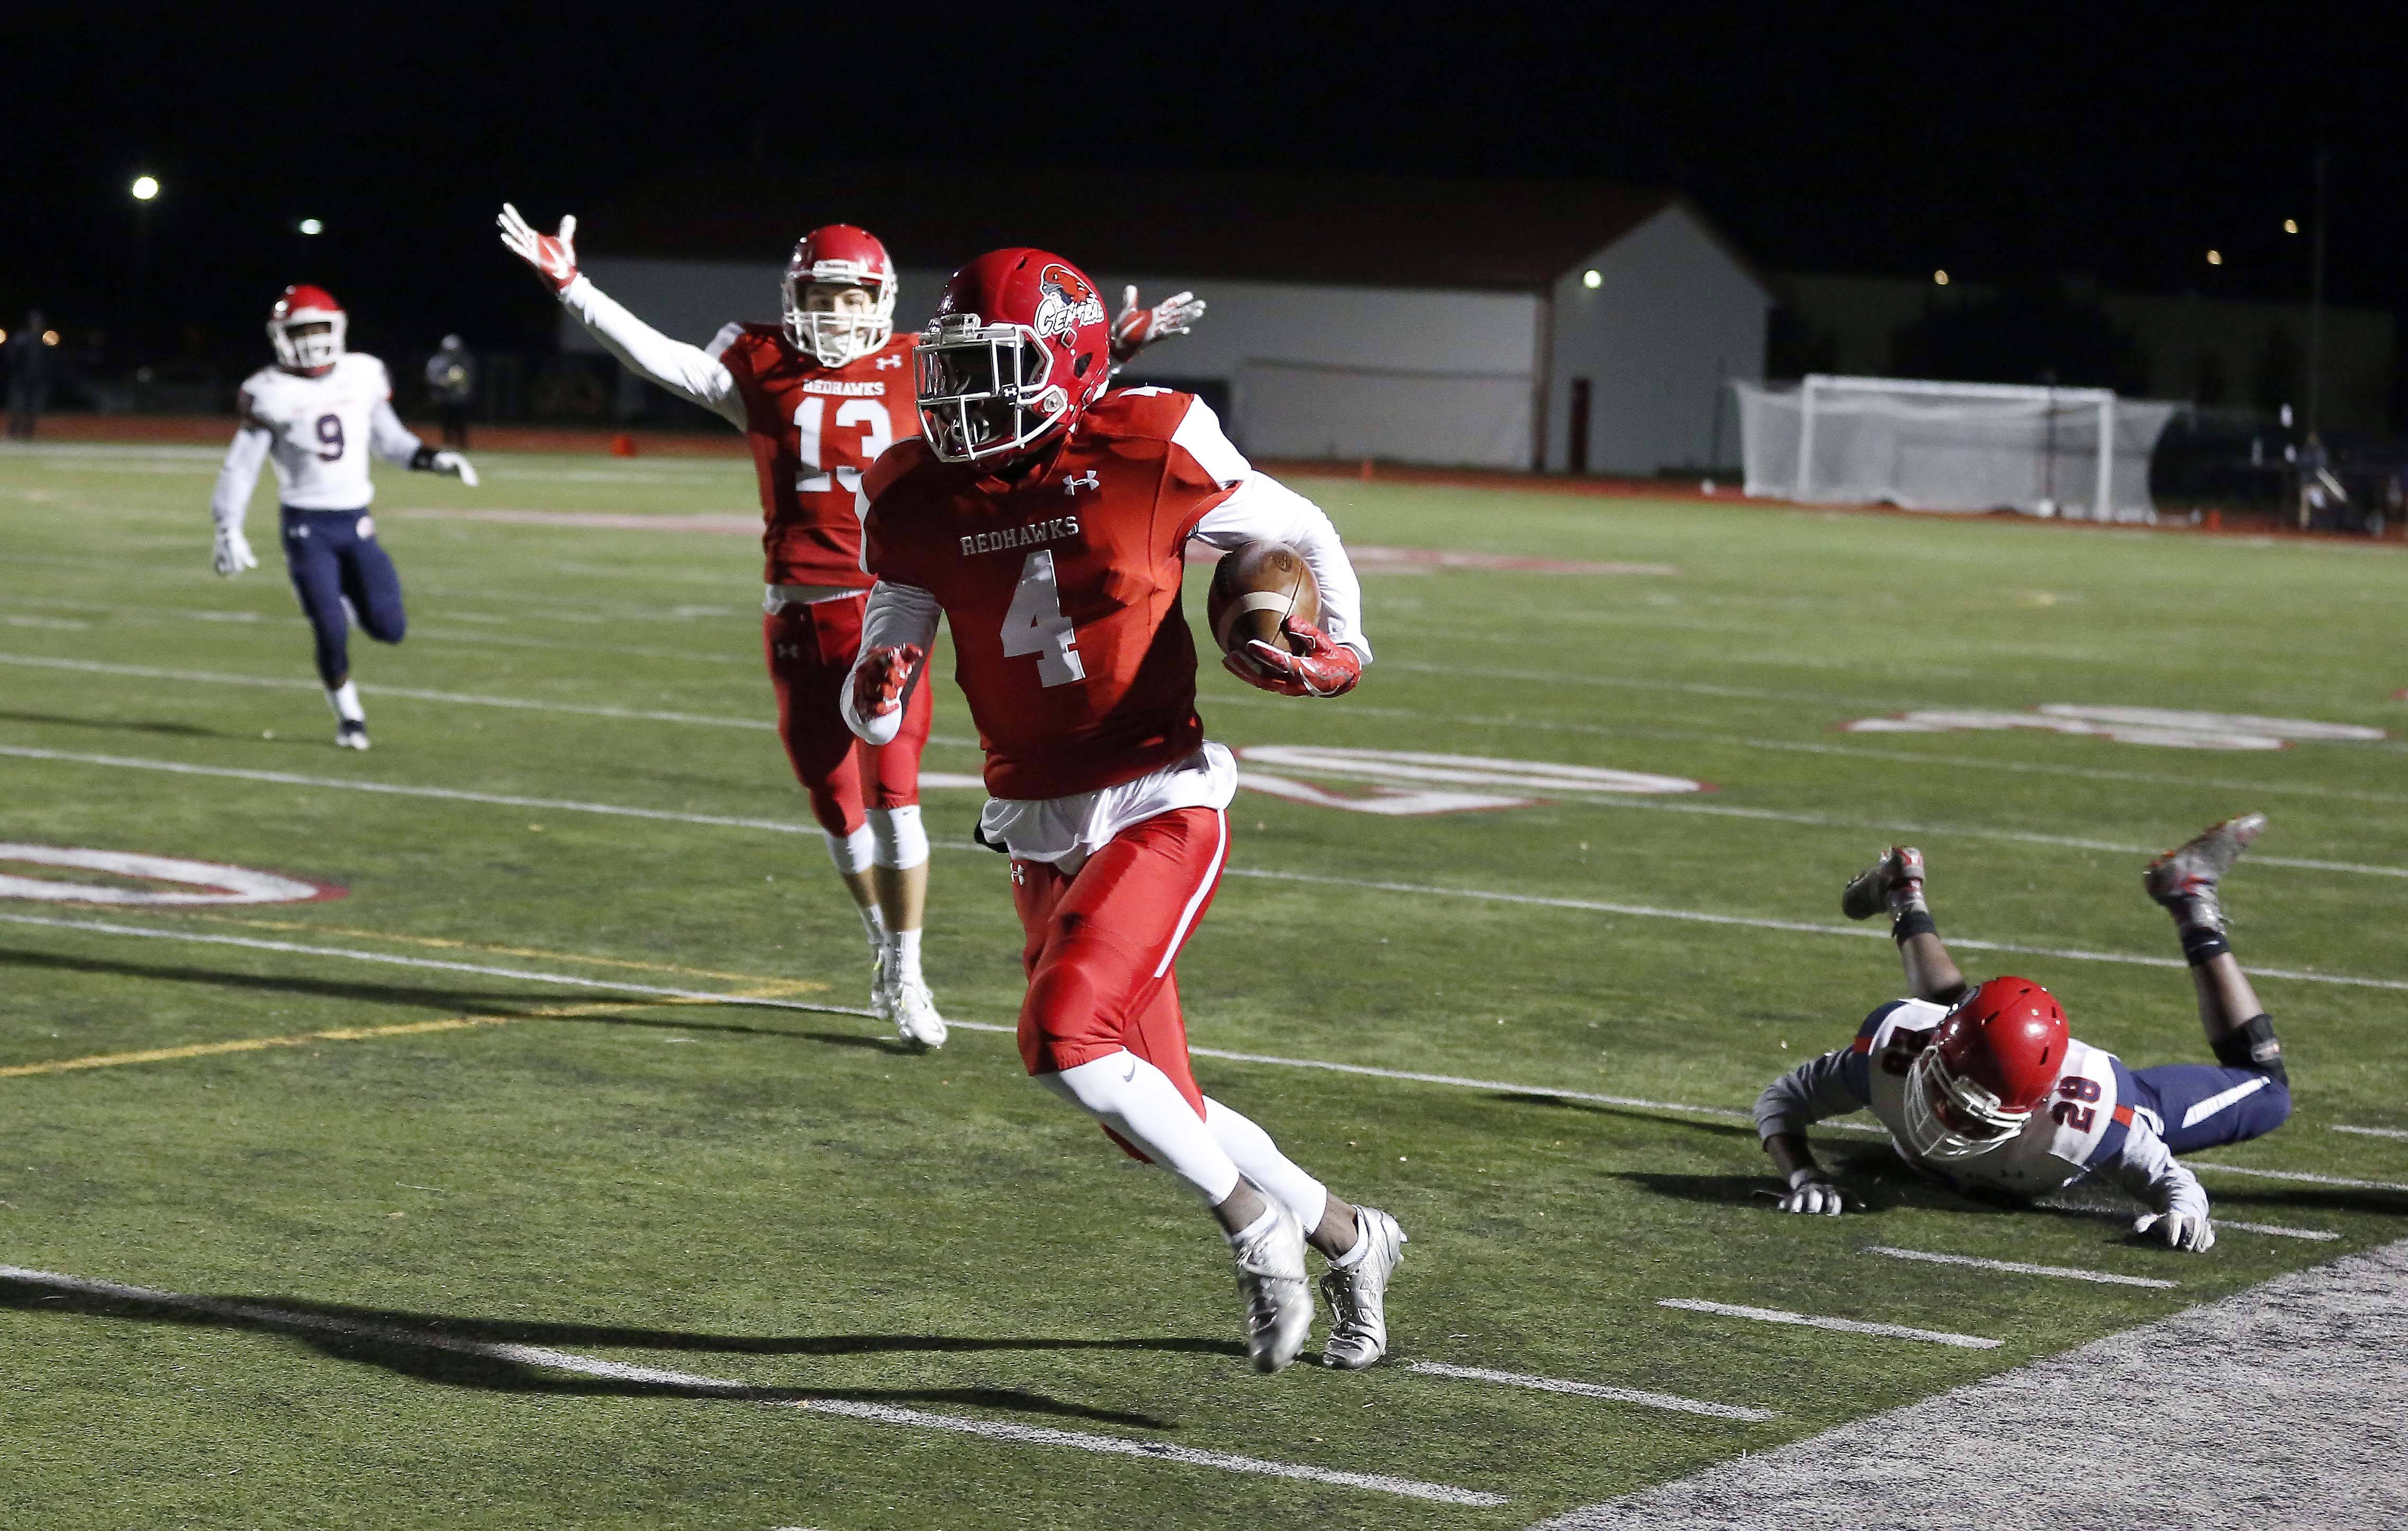 Naperville Central moves forth against West Aurora